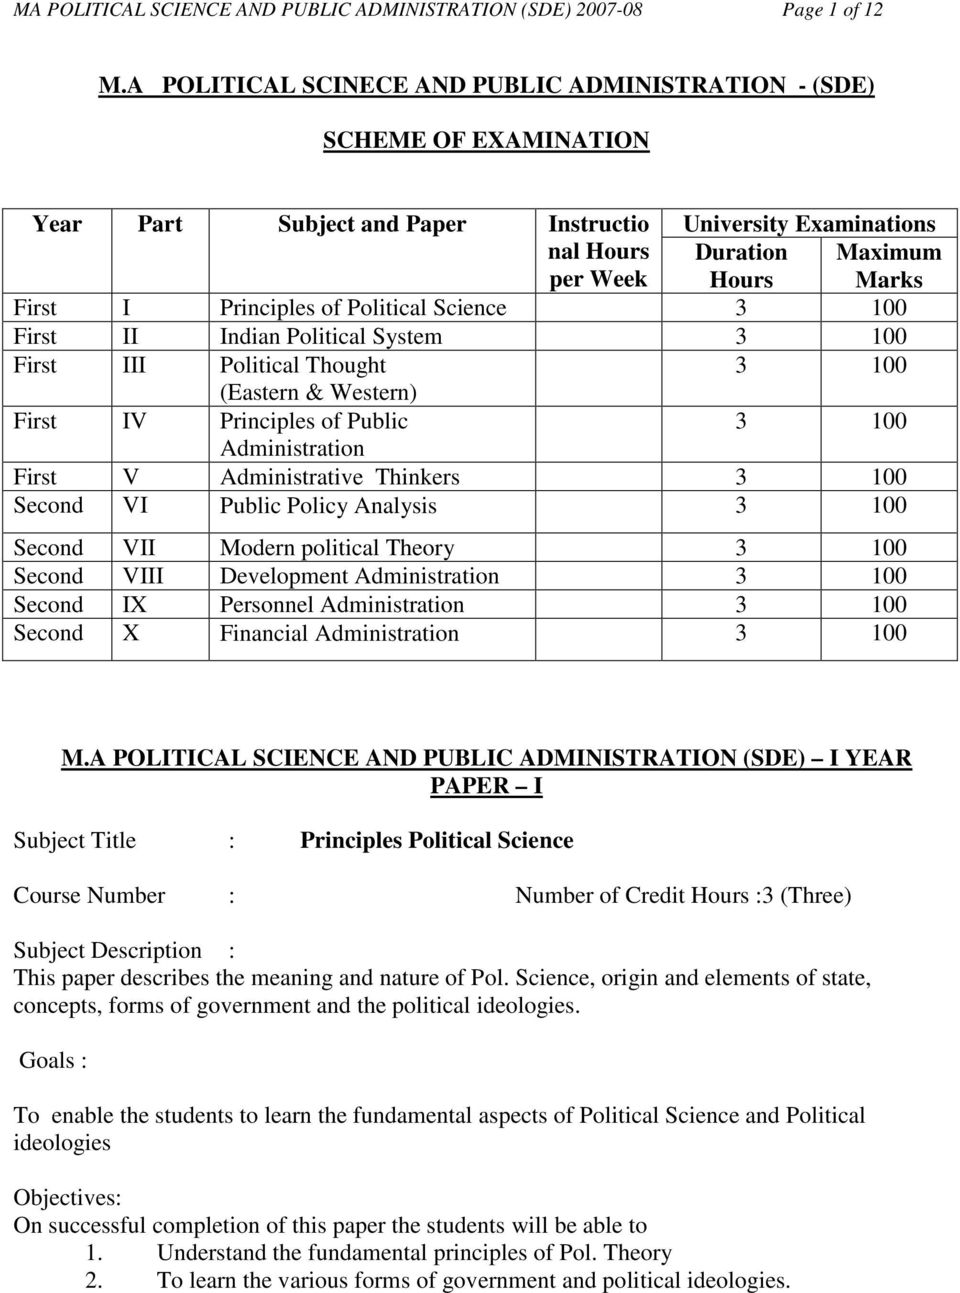 Principles of Political Science 3 100 First II Indian Political System 3 100 First III Political Thought 3 100 (Eastern & Western) First IV Principles of Public 3 100 Administration First V